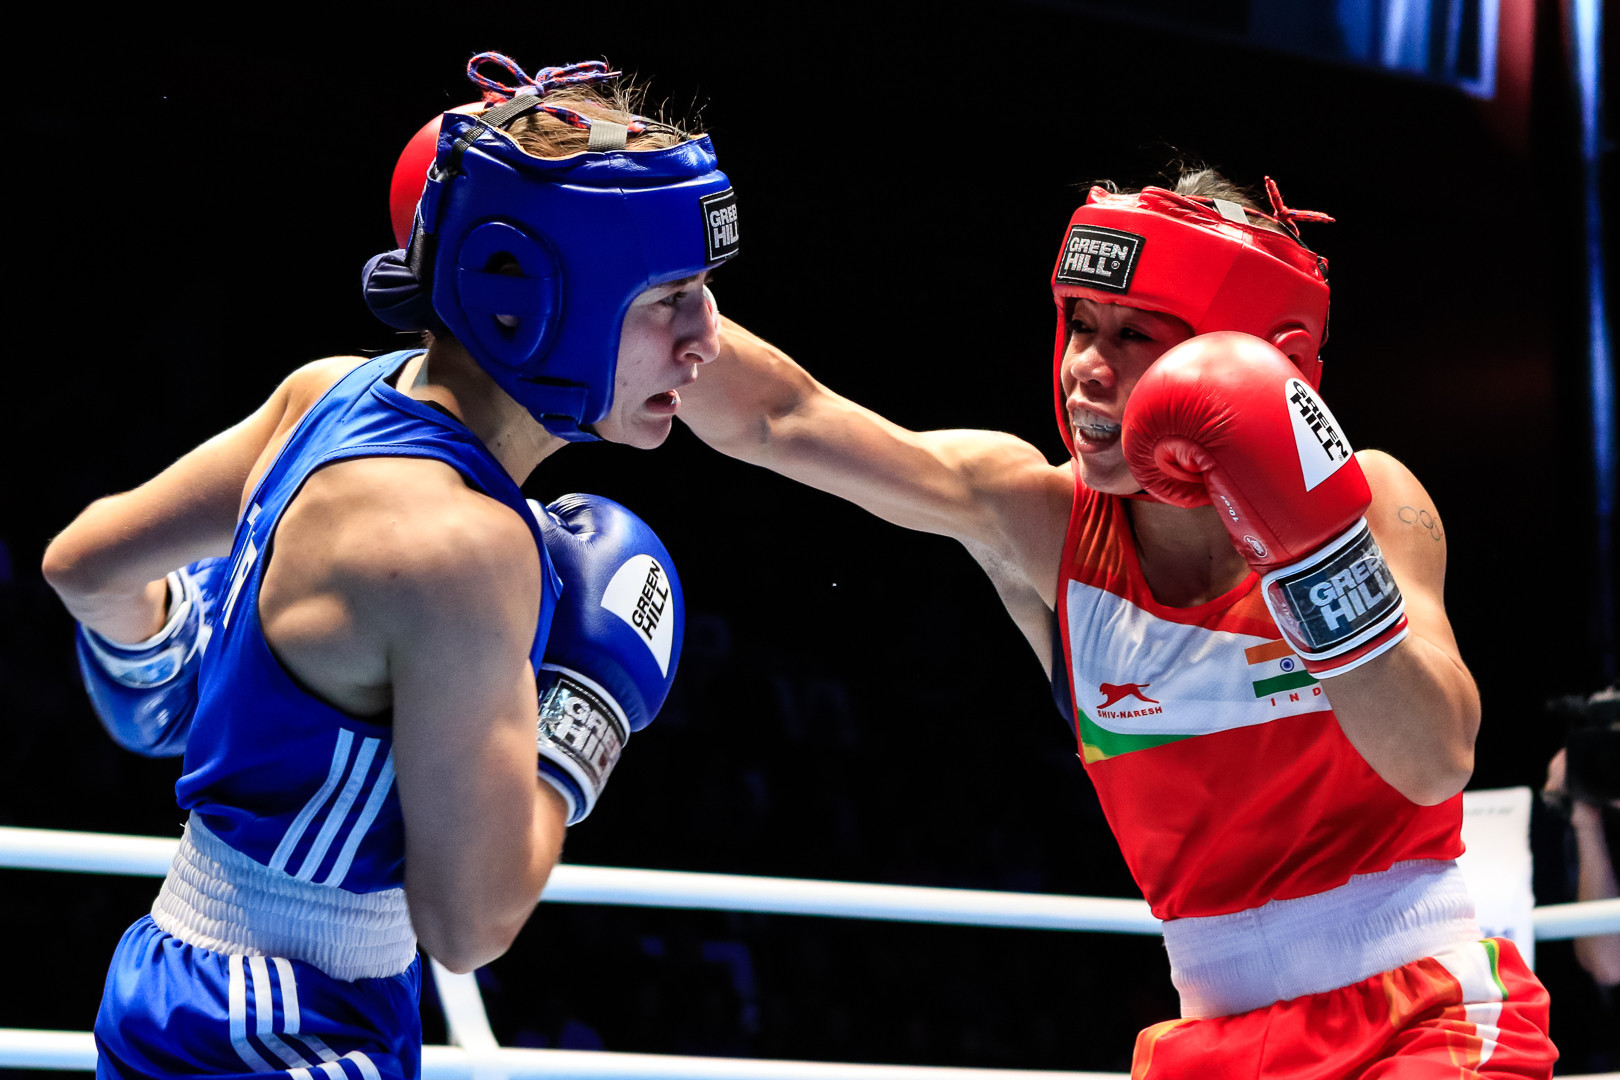 Çakıroğlu won the bout 4-1, with Kom filing a protest which was also rejected ©AIBA